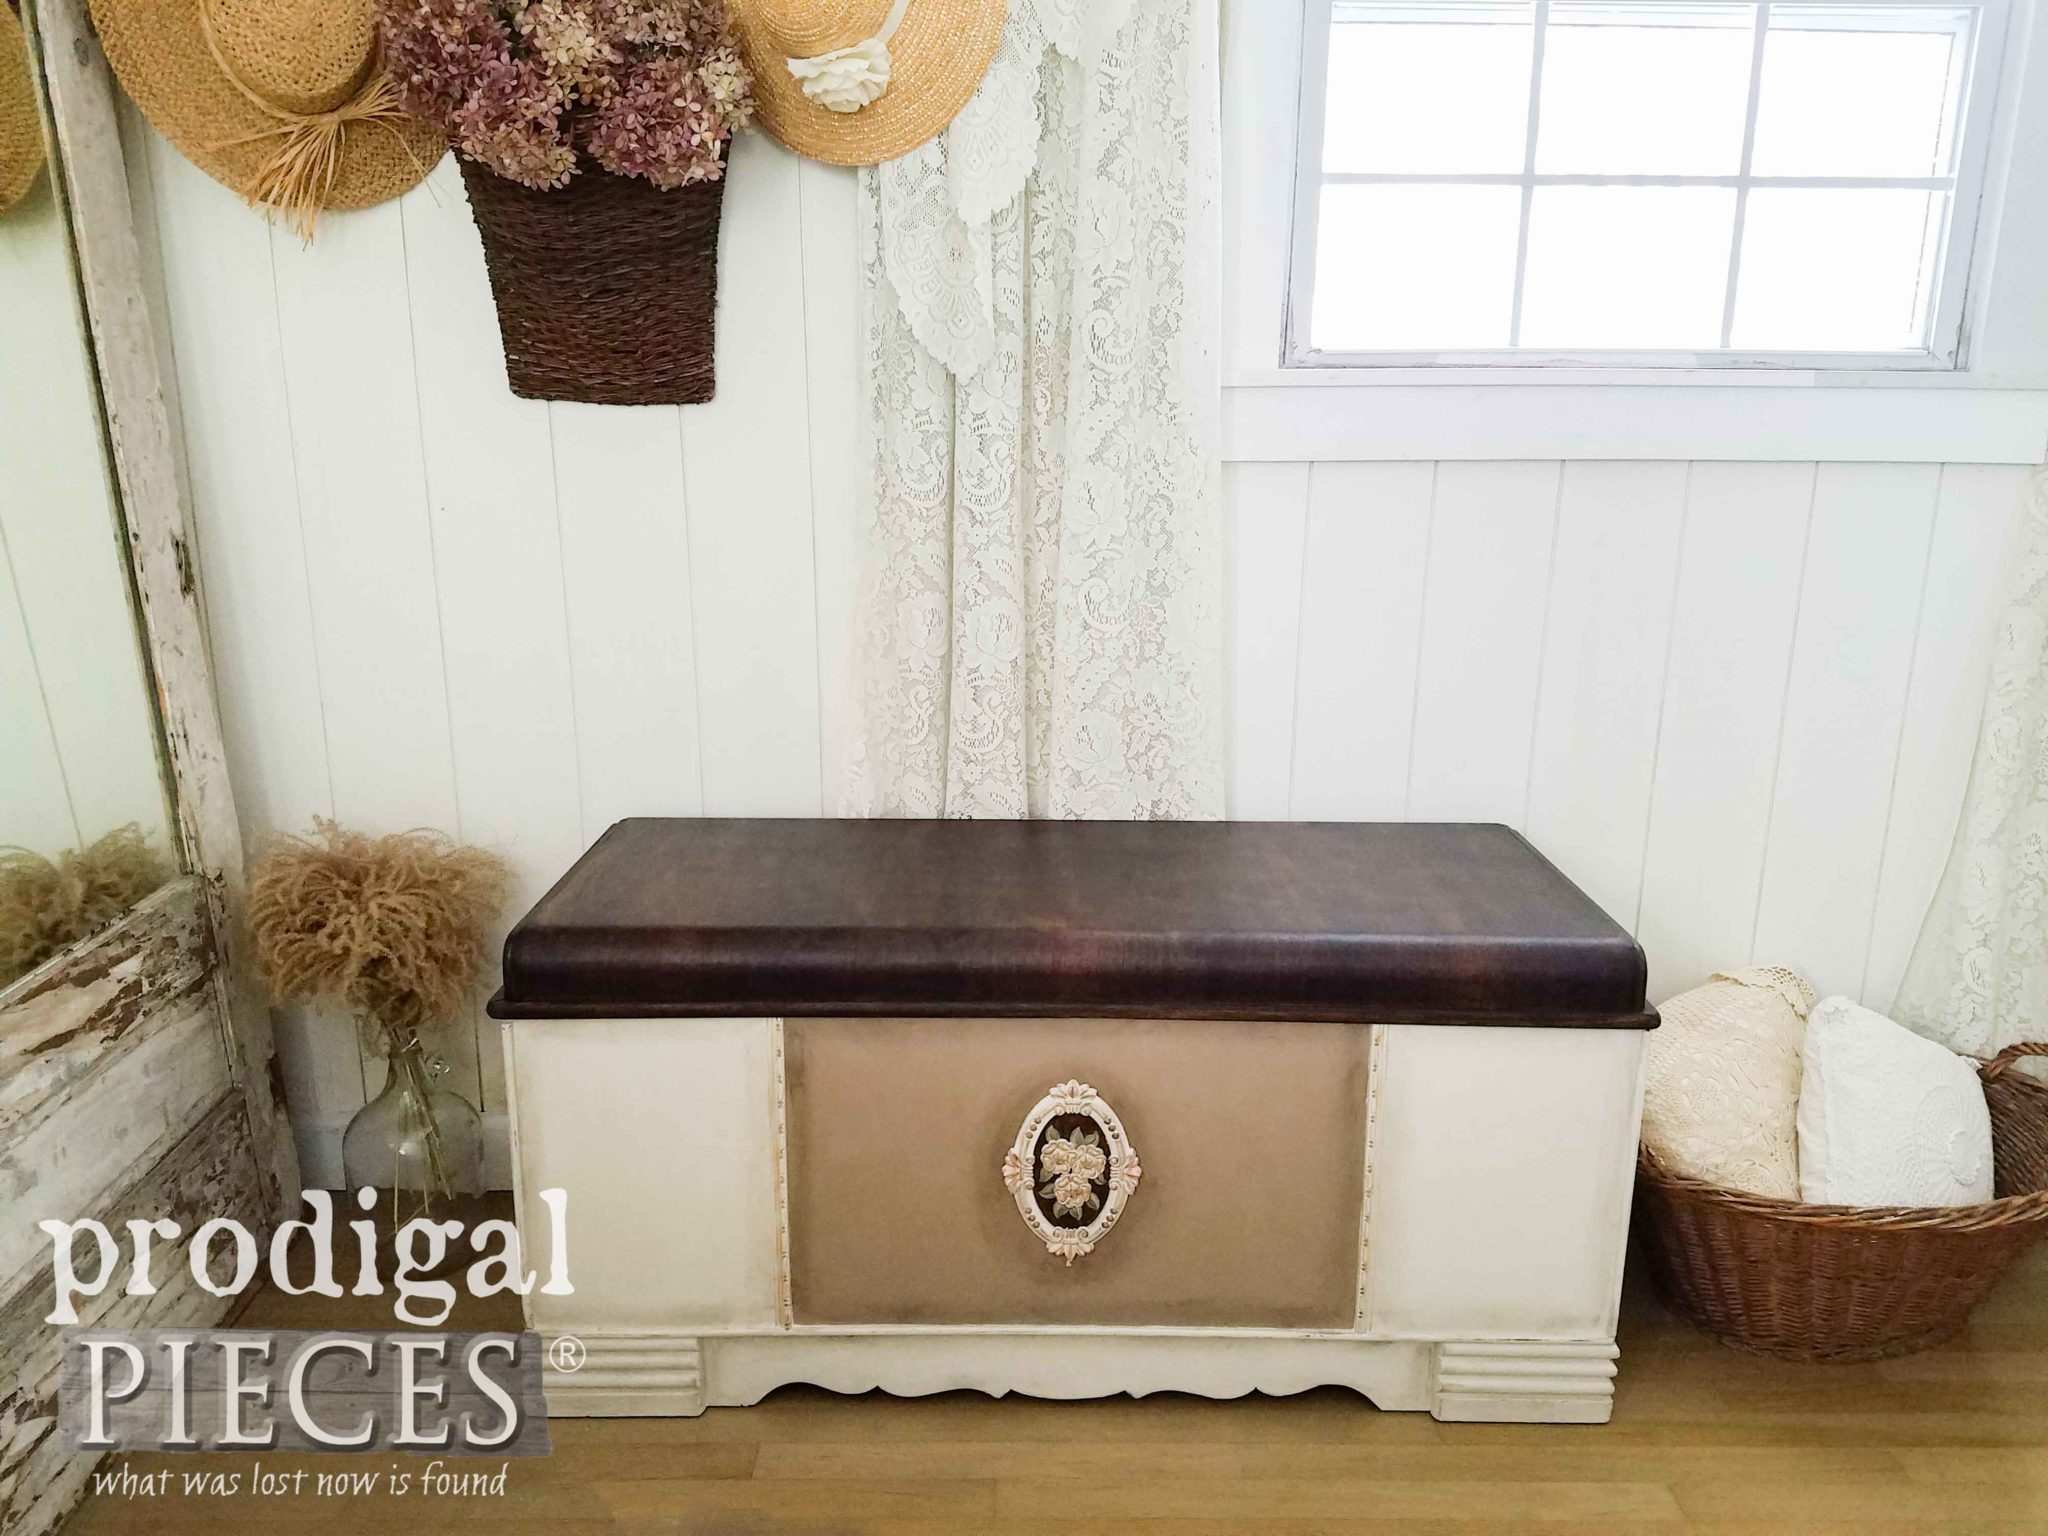 Vintage Waterfall Hope Chest Made New by Larissa of Prodigal Pieces using Dixie Belle Paint Products | prodigalpieces.com